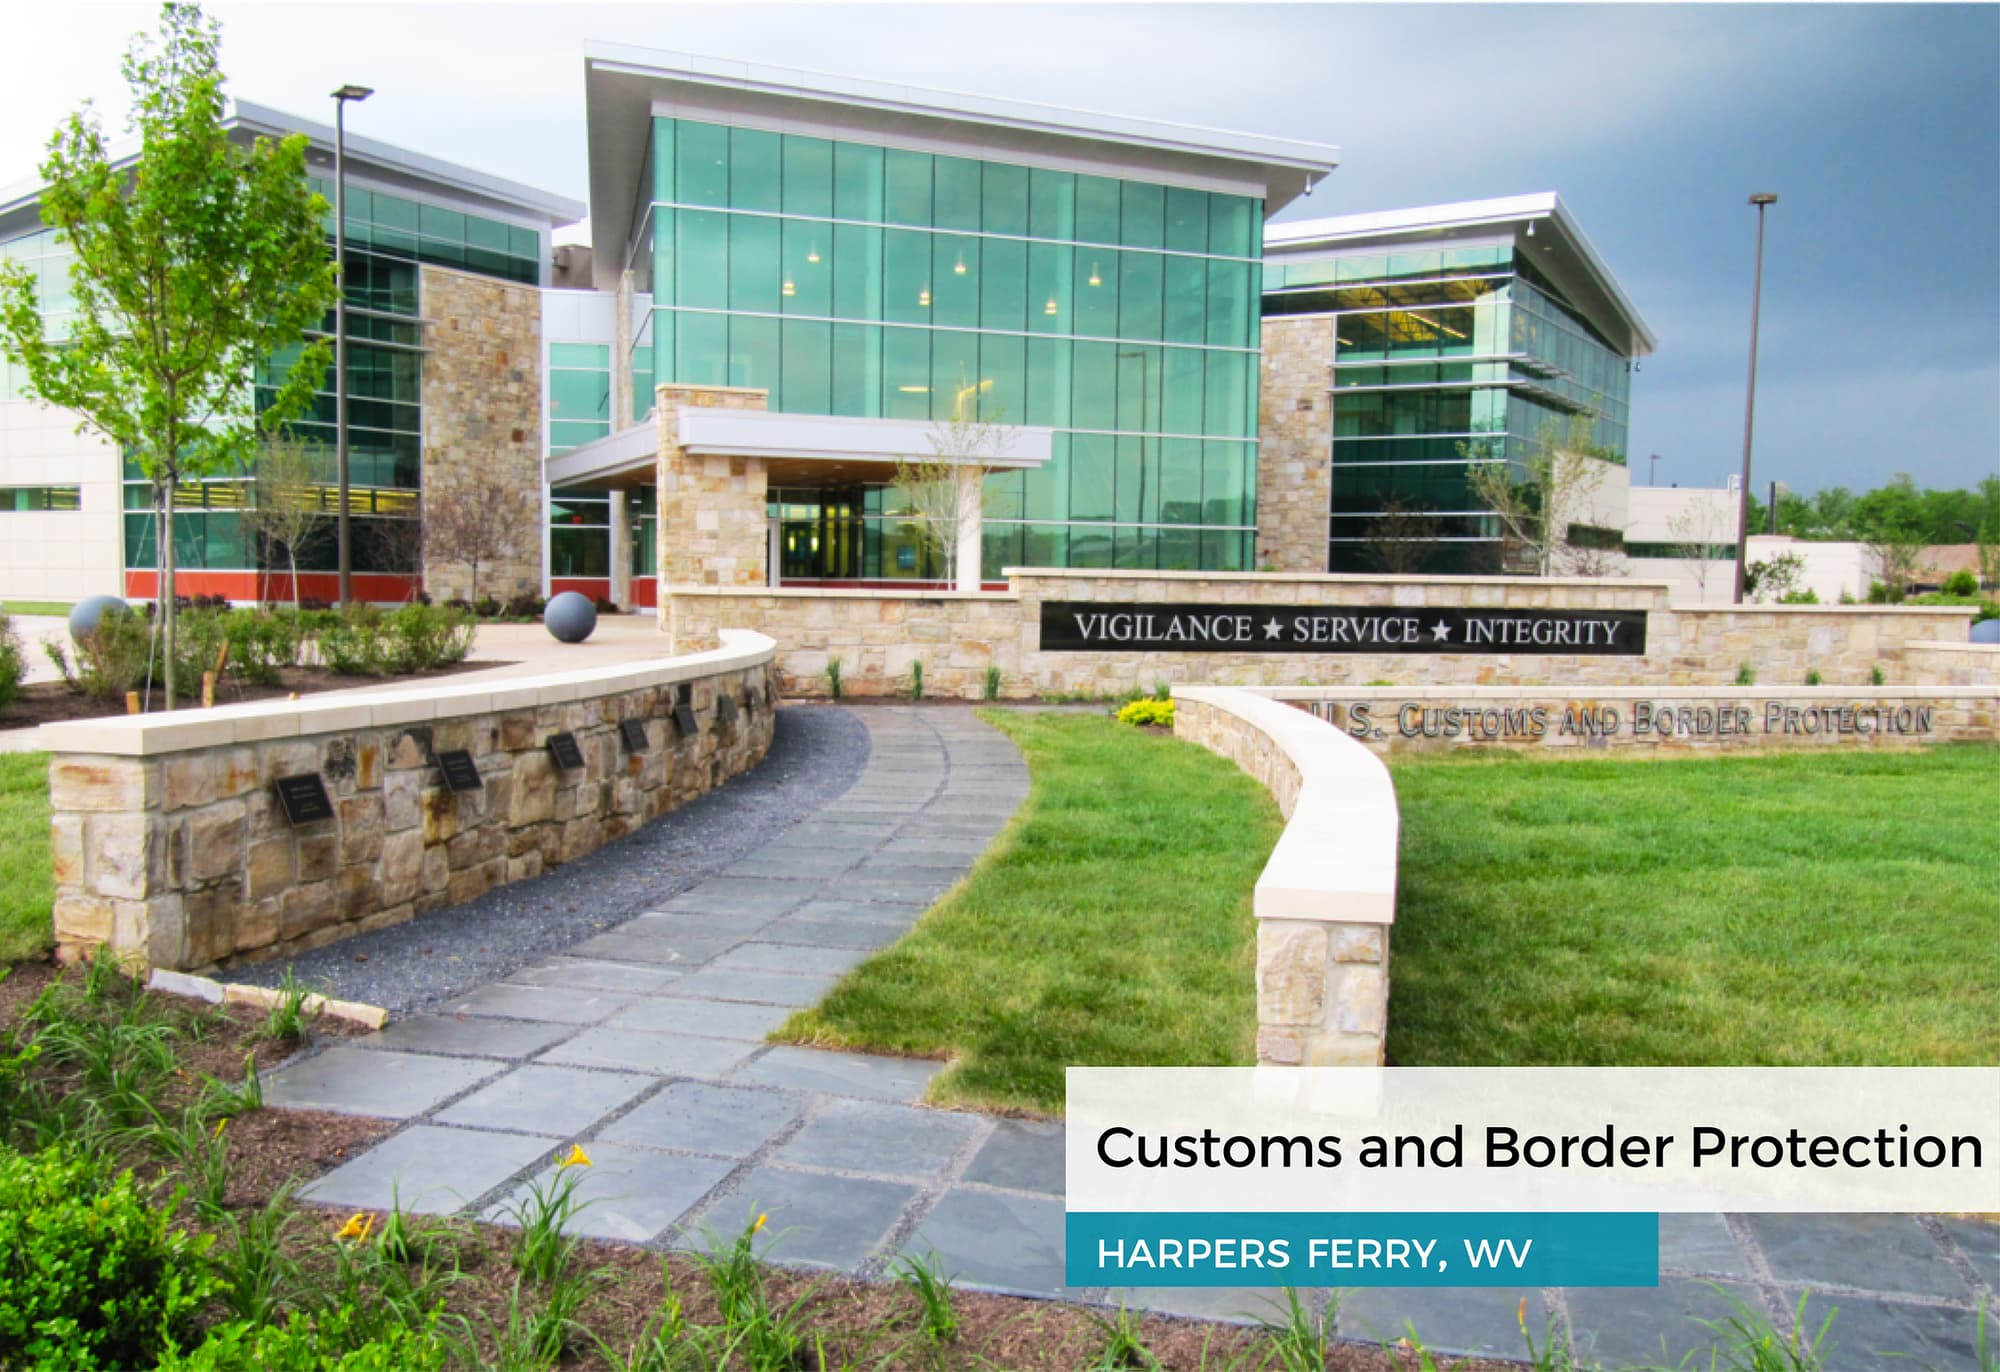 US Customs and Border Protection in Harpers Ferry, WV